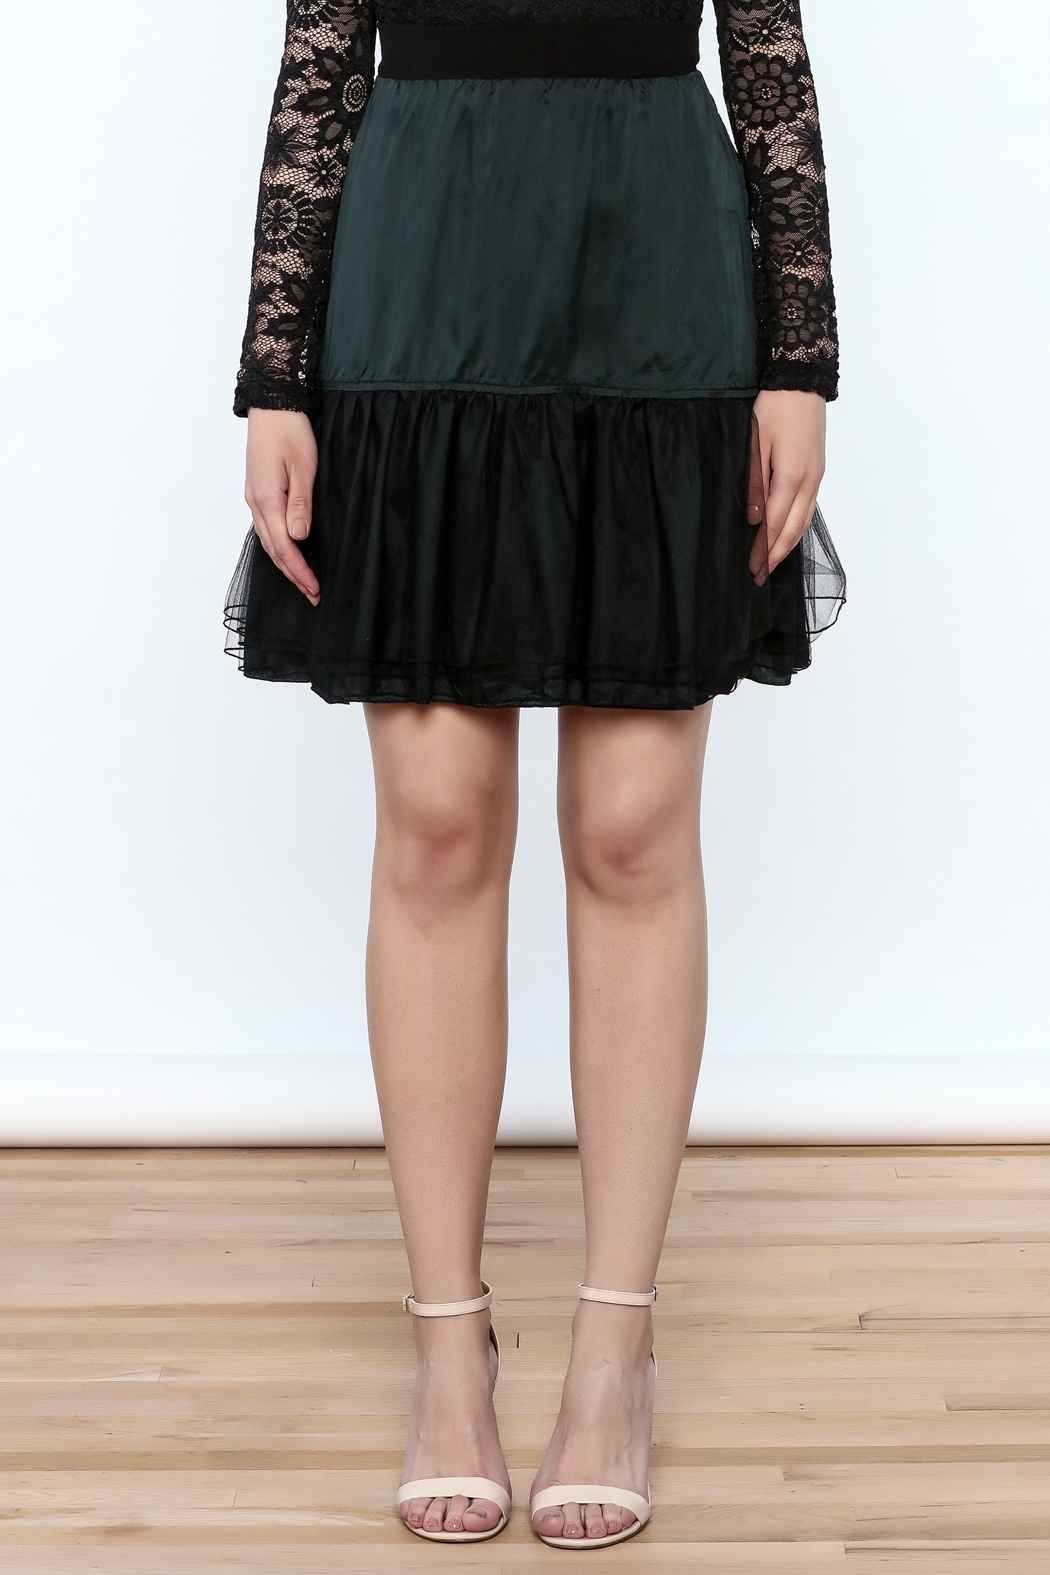 Neesh by D.A.R. Reversible Tutu Skirt - Side Cropped Image